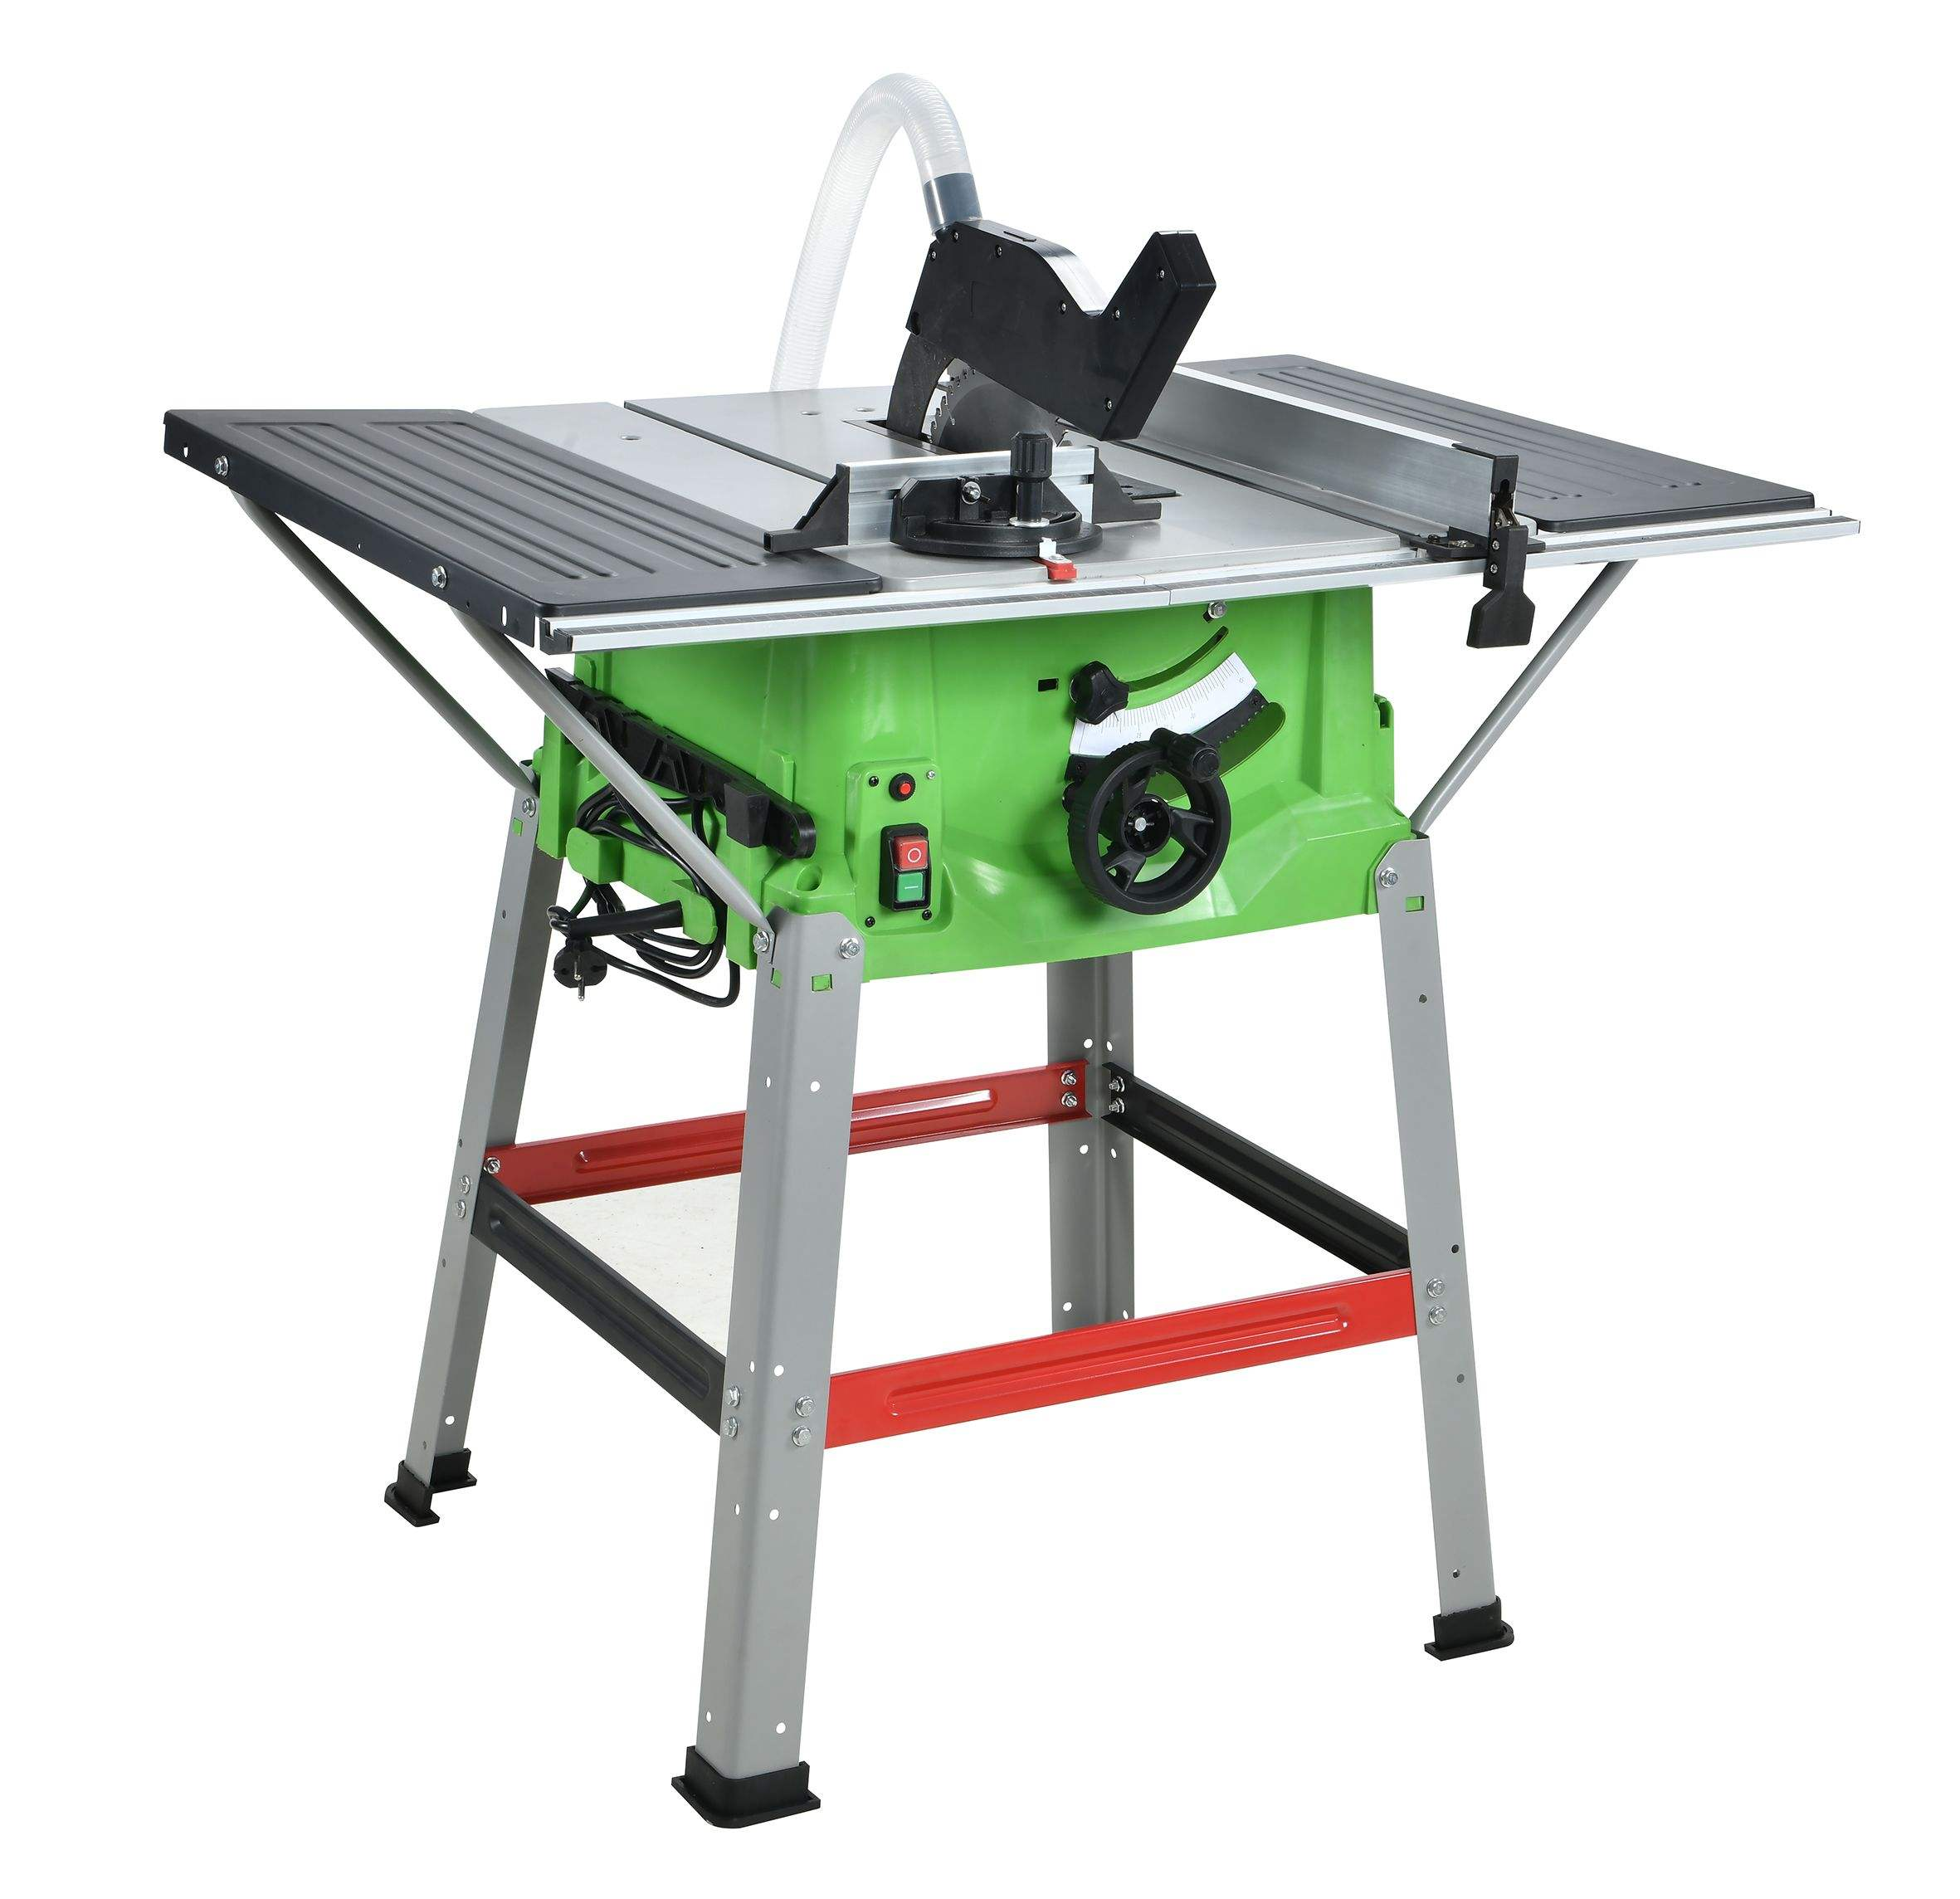 WORKS Top quality table saw woodworking circular table bench saw with long life TCT blade 255mm table saws for woodworking